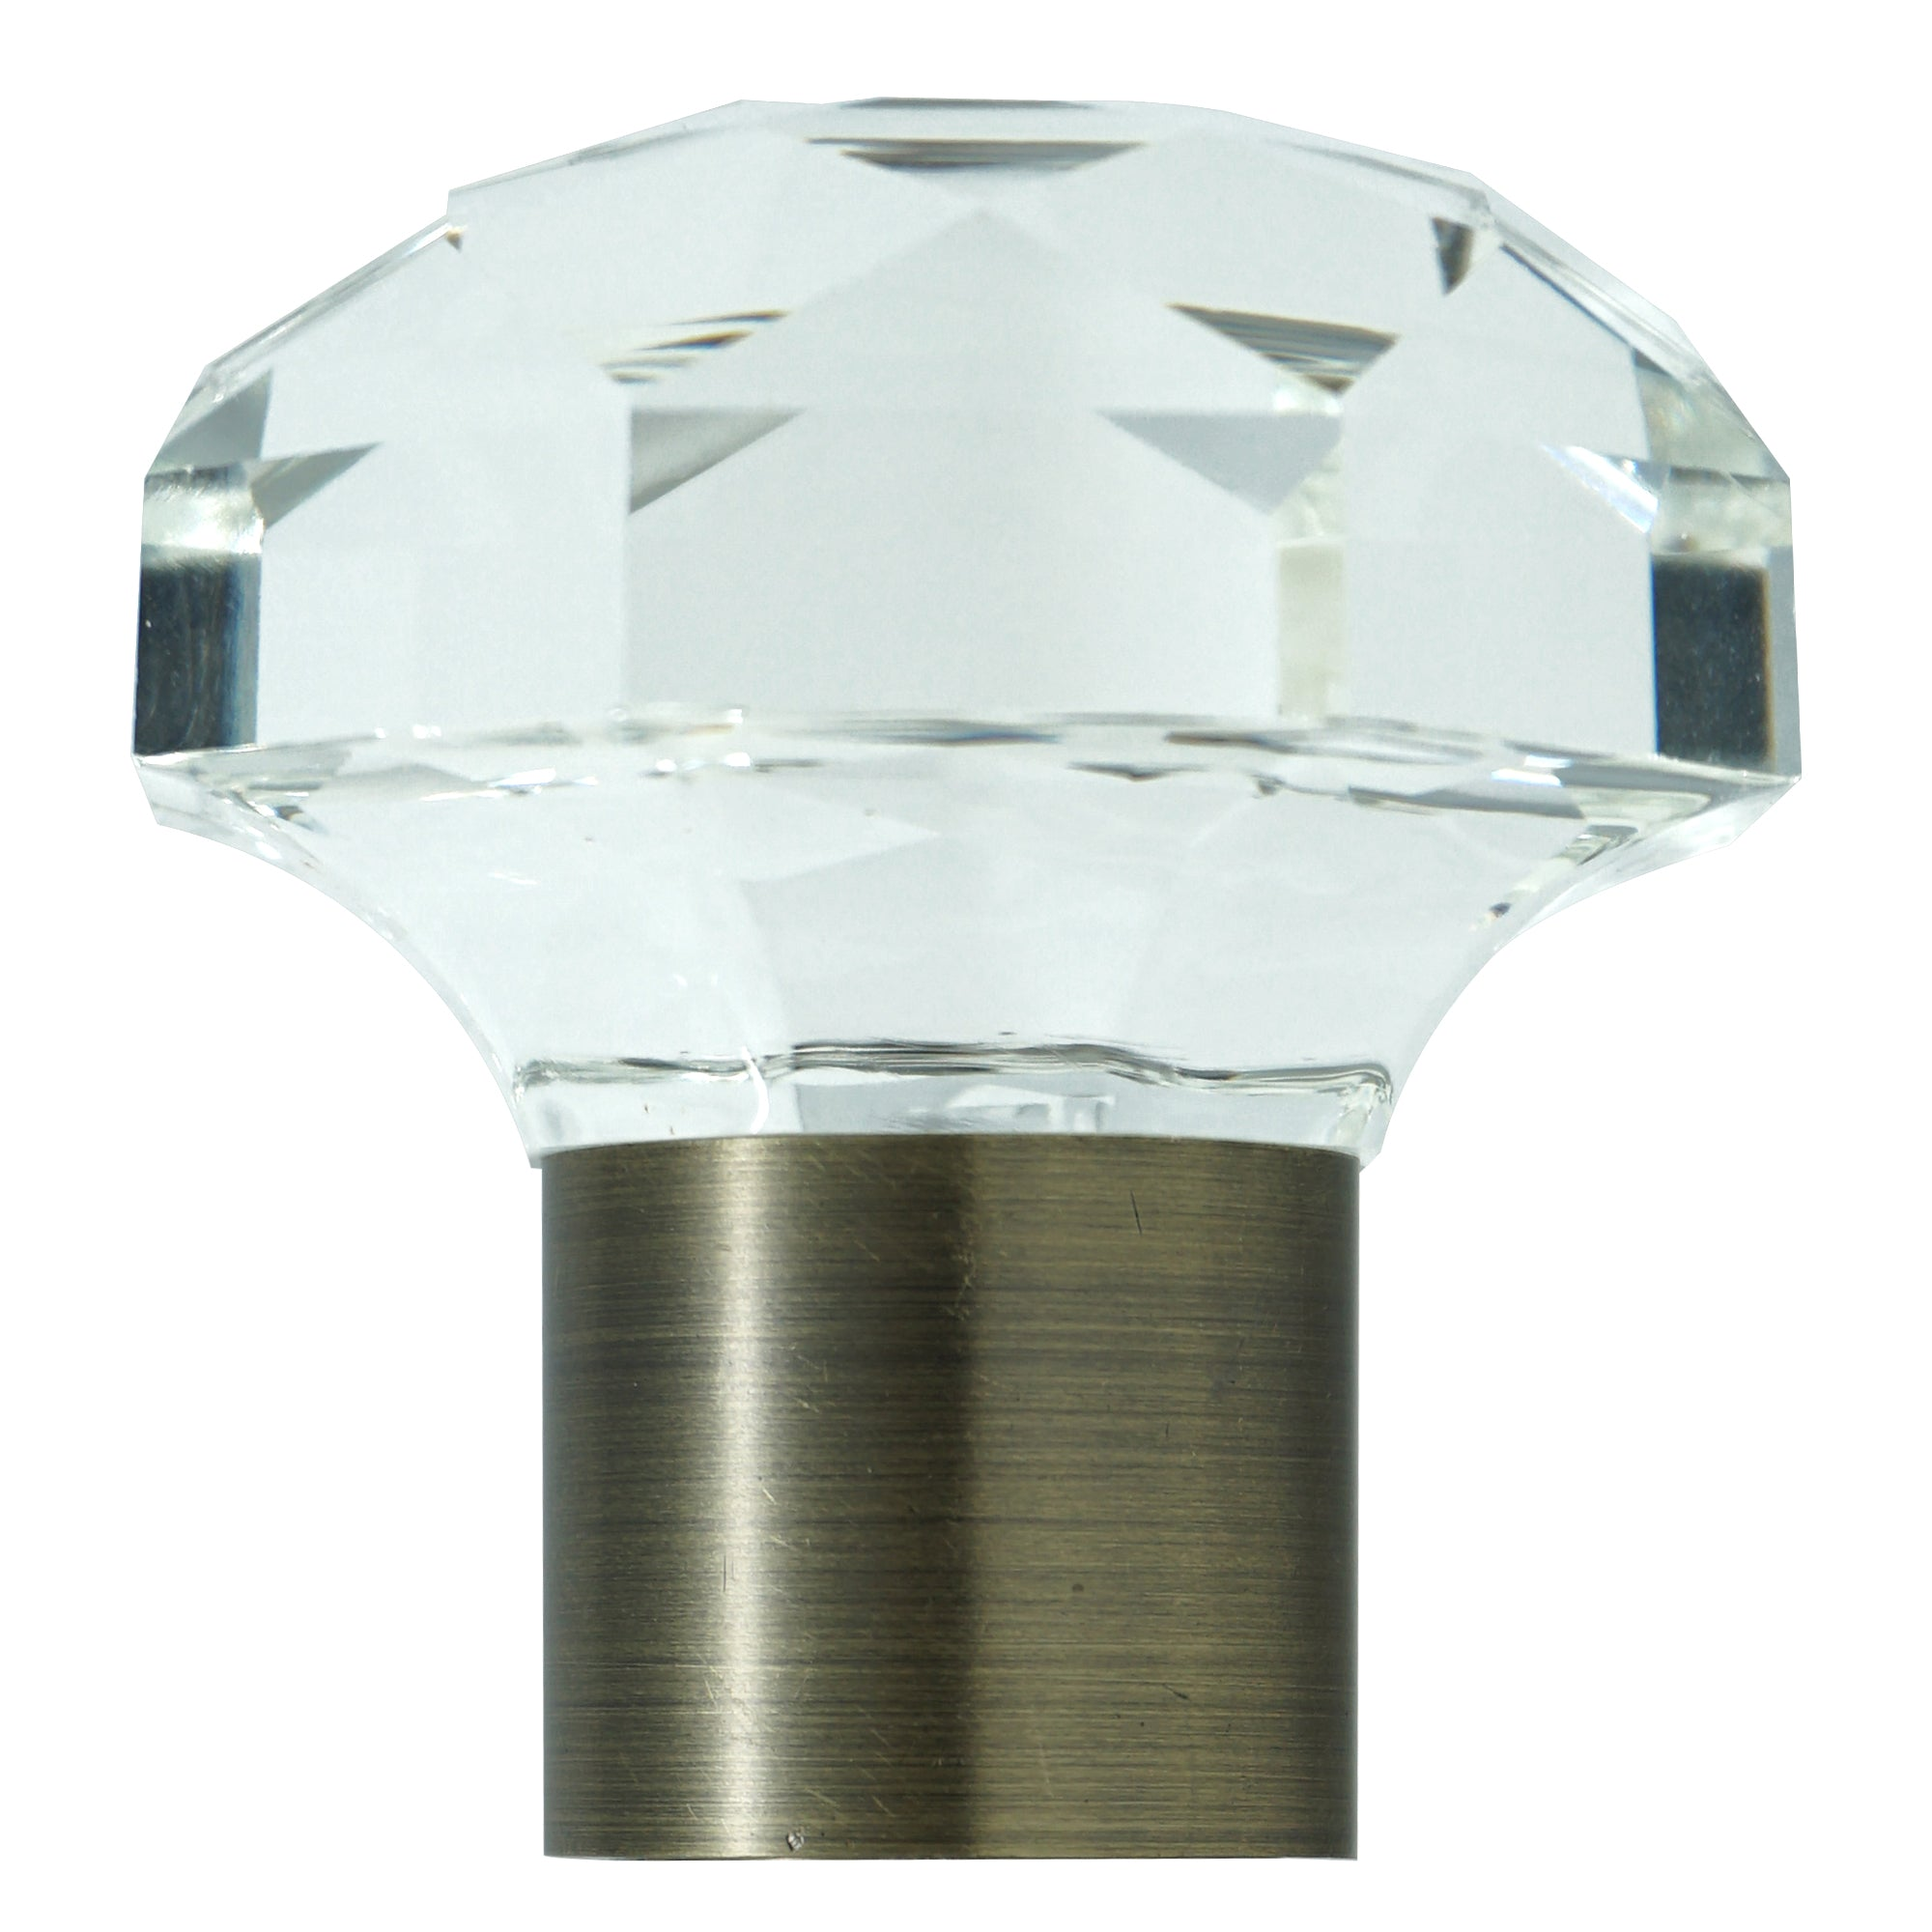 Glass Finial - Antique Brass Finish